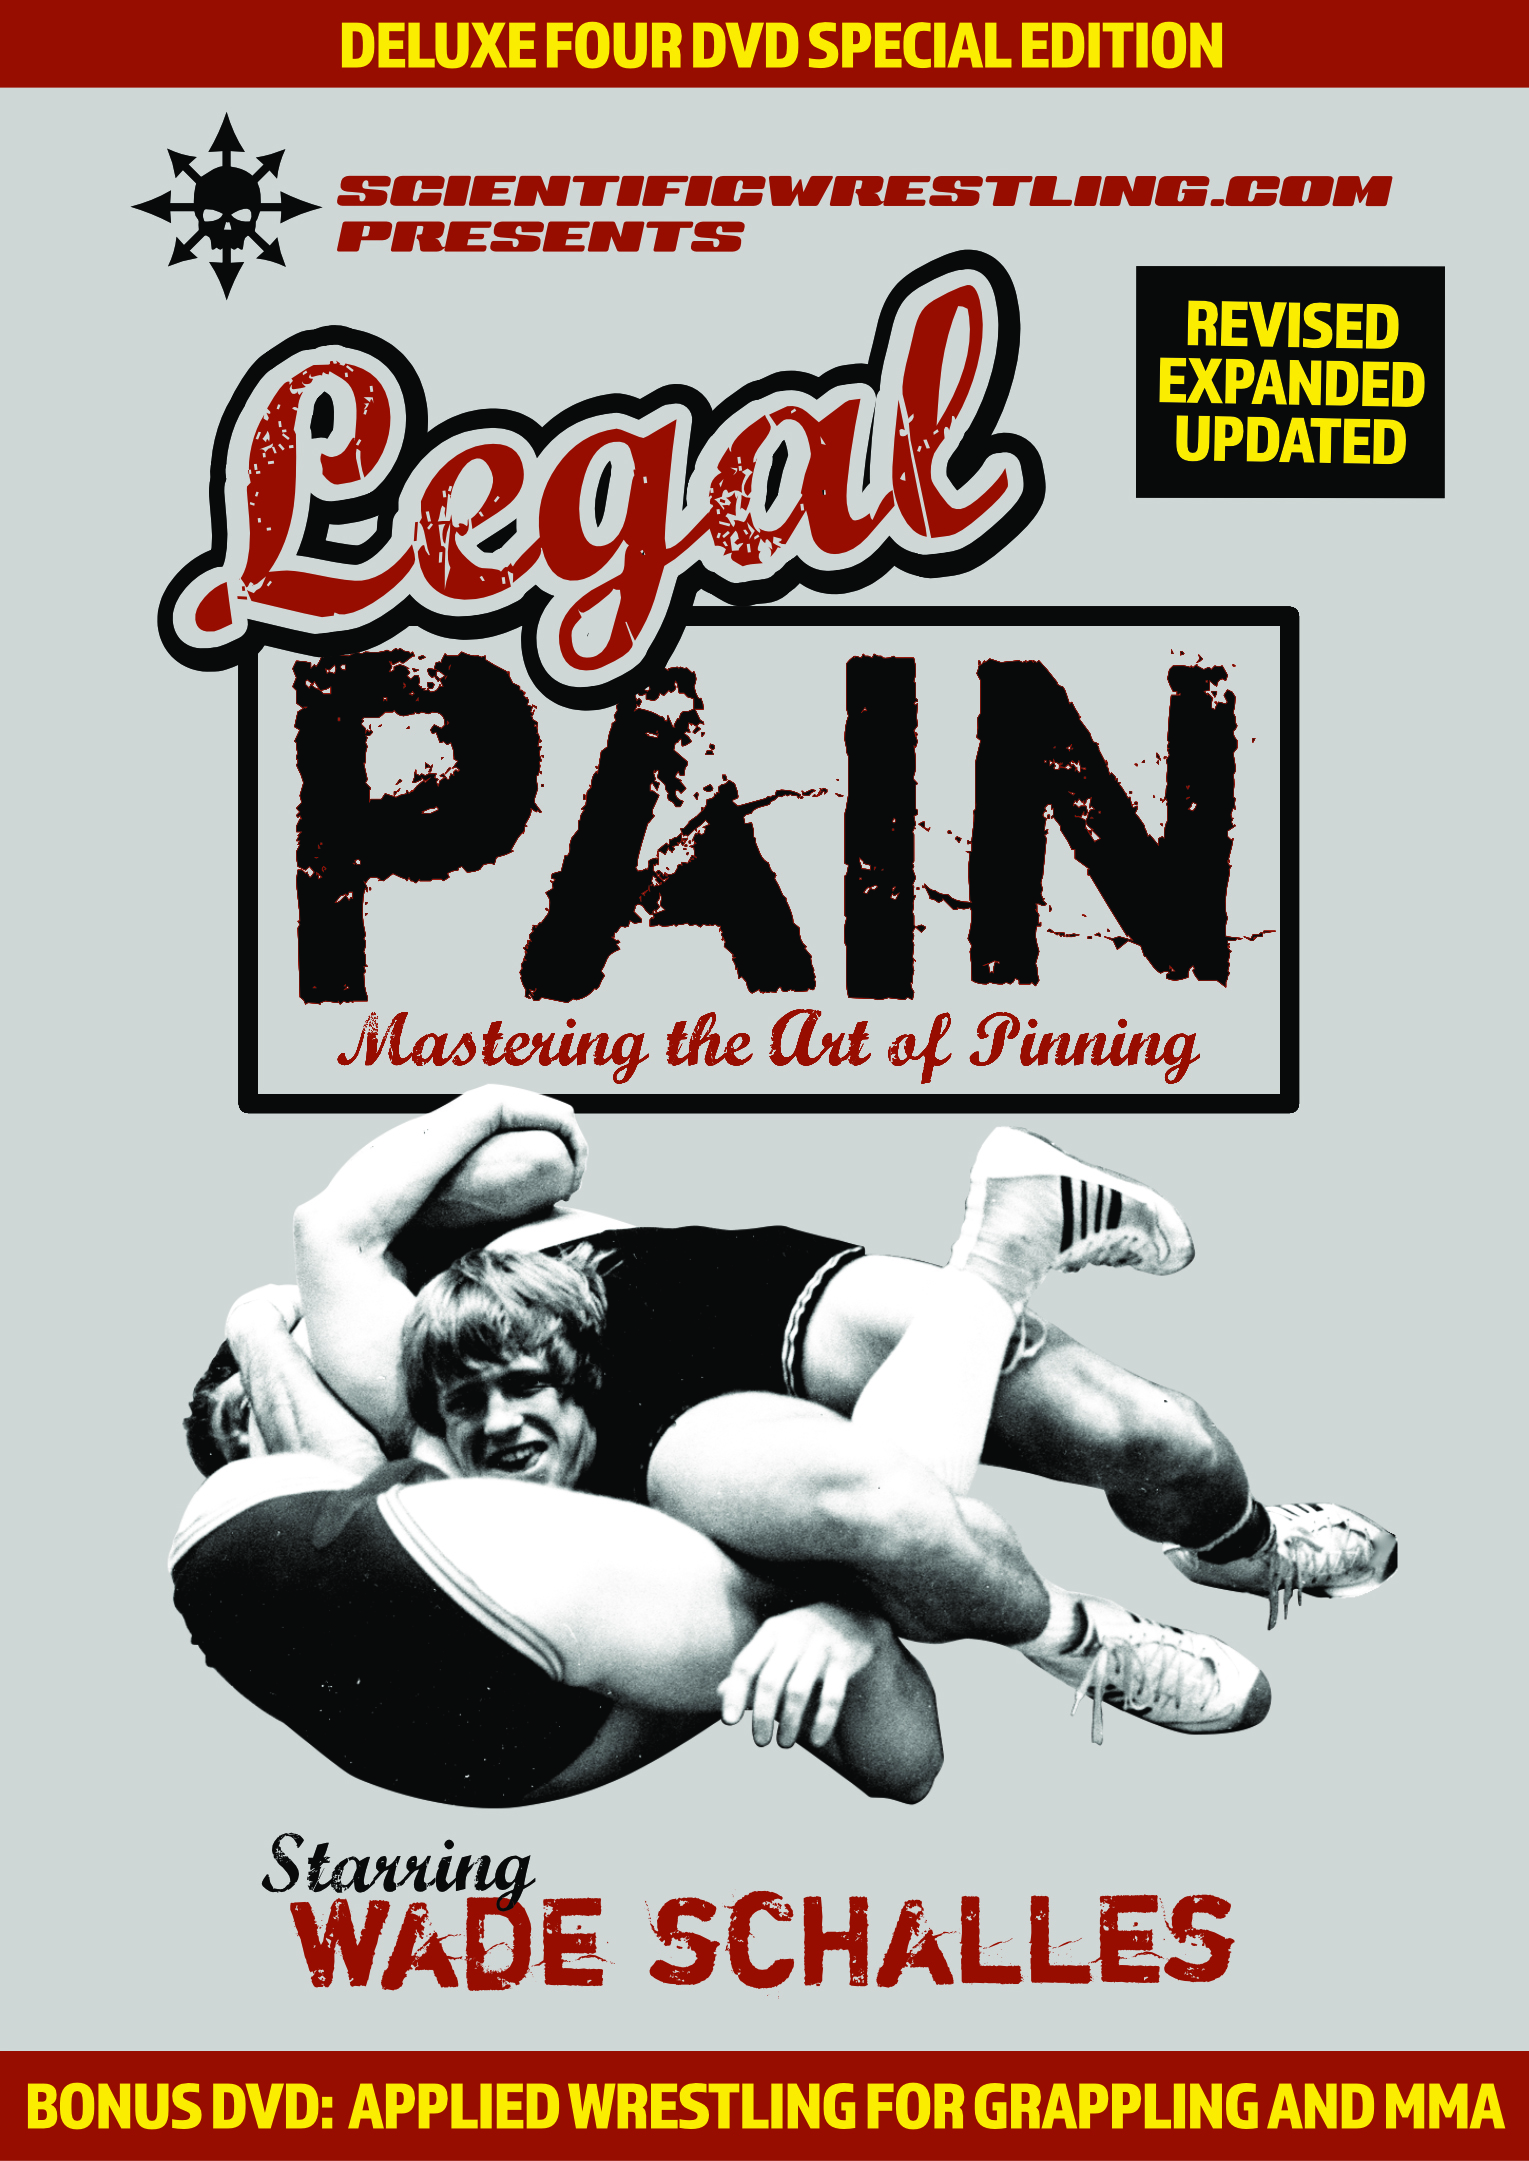 Wade Schalles LEGAL PAIN DELUXE 4 DVD SET.